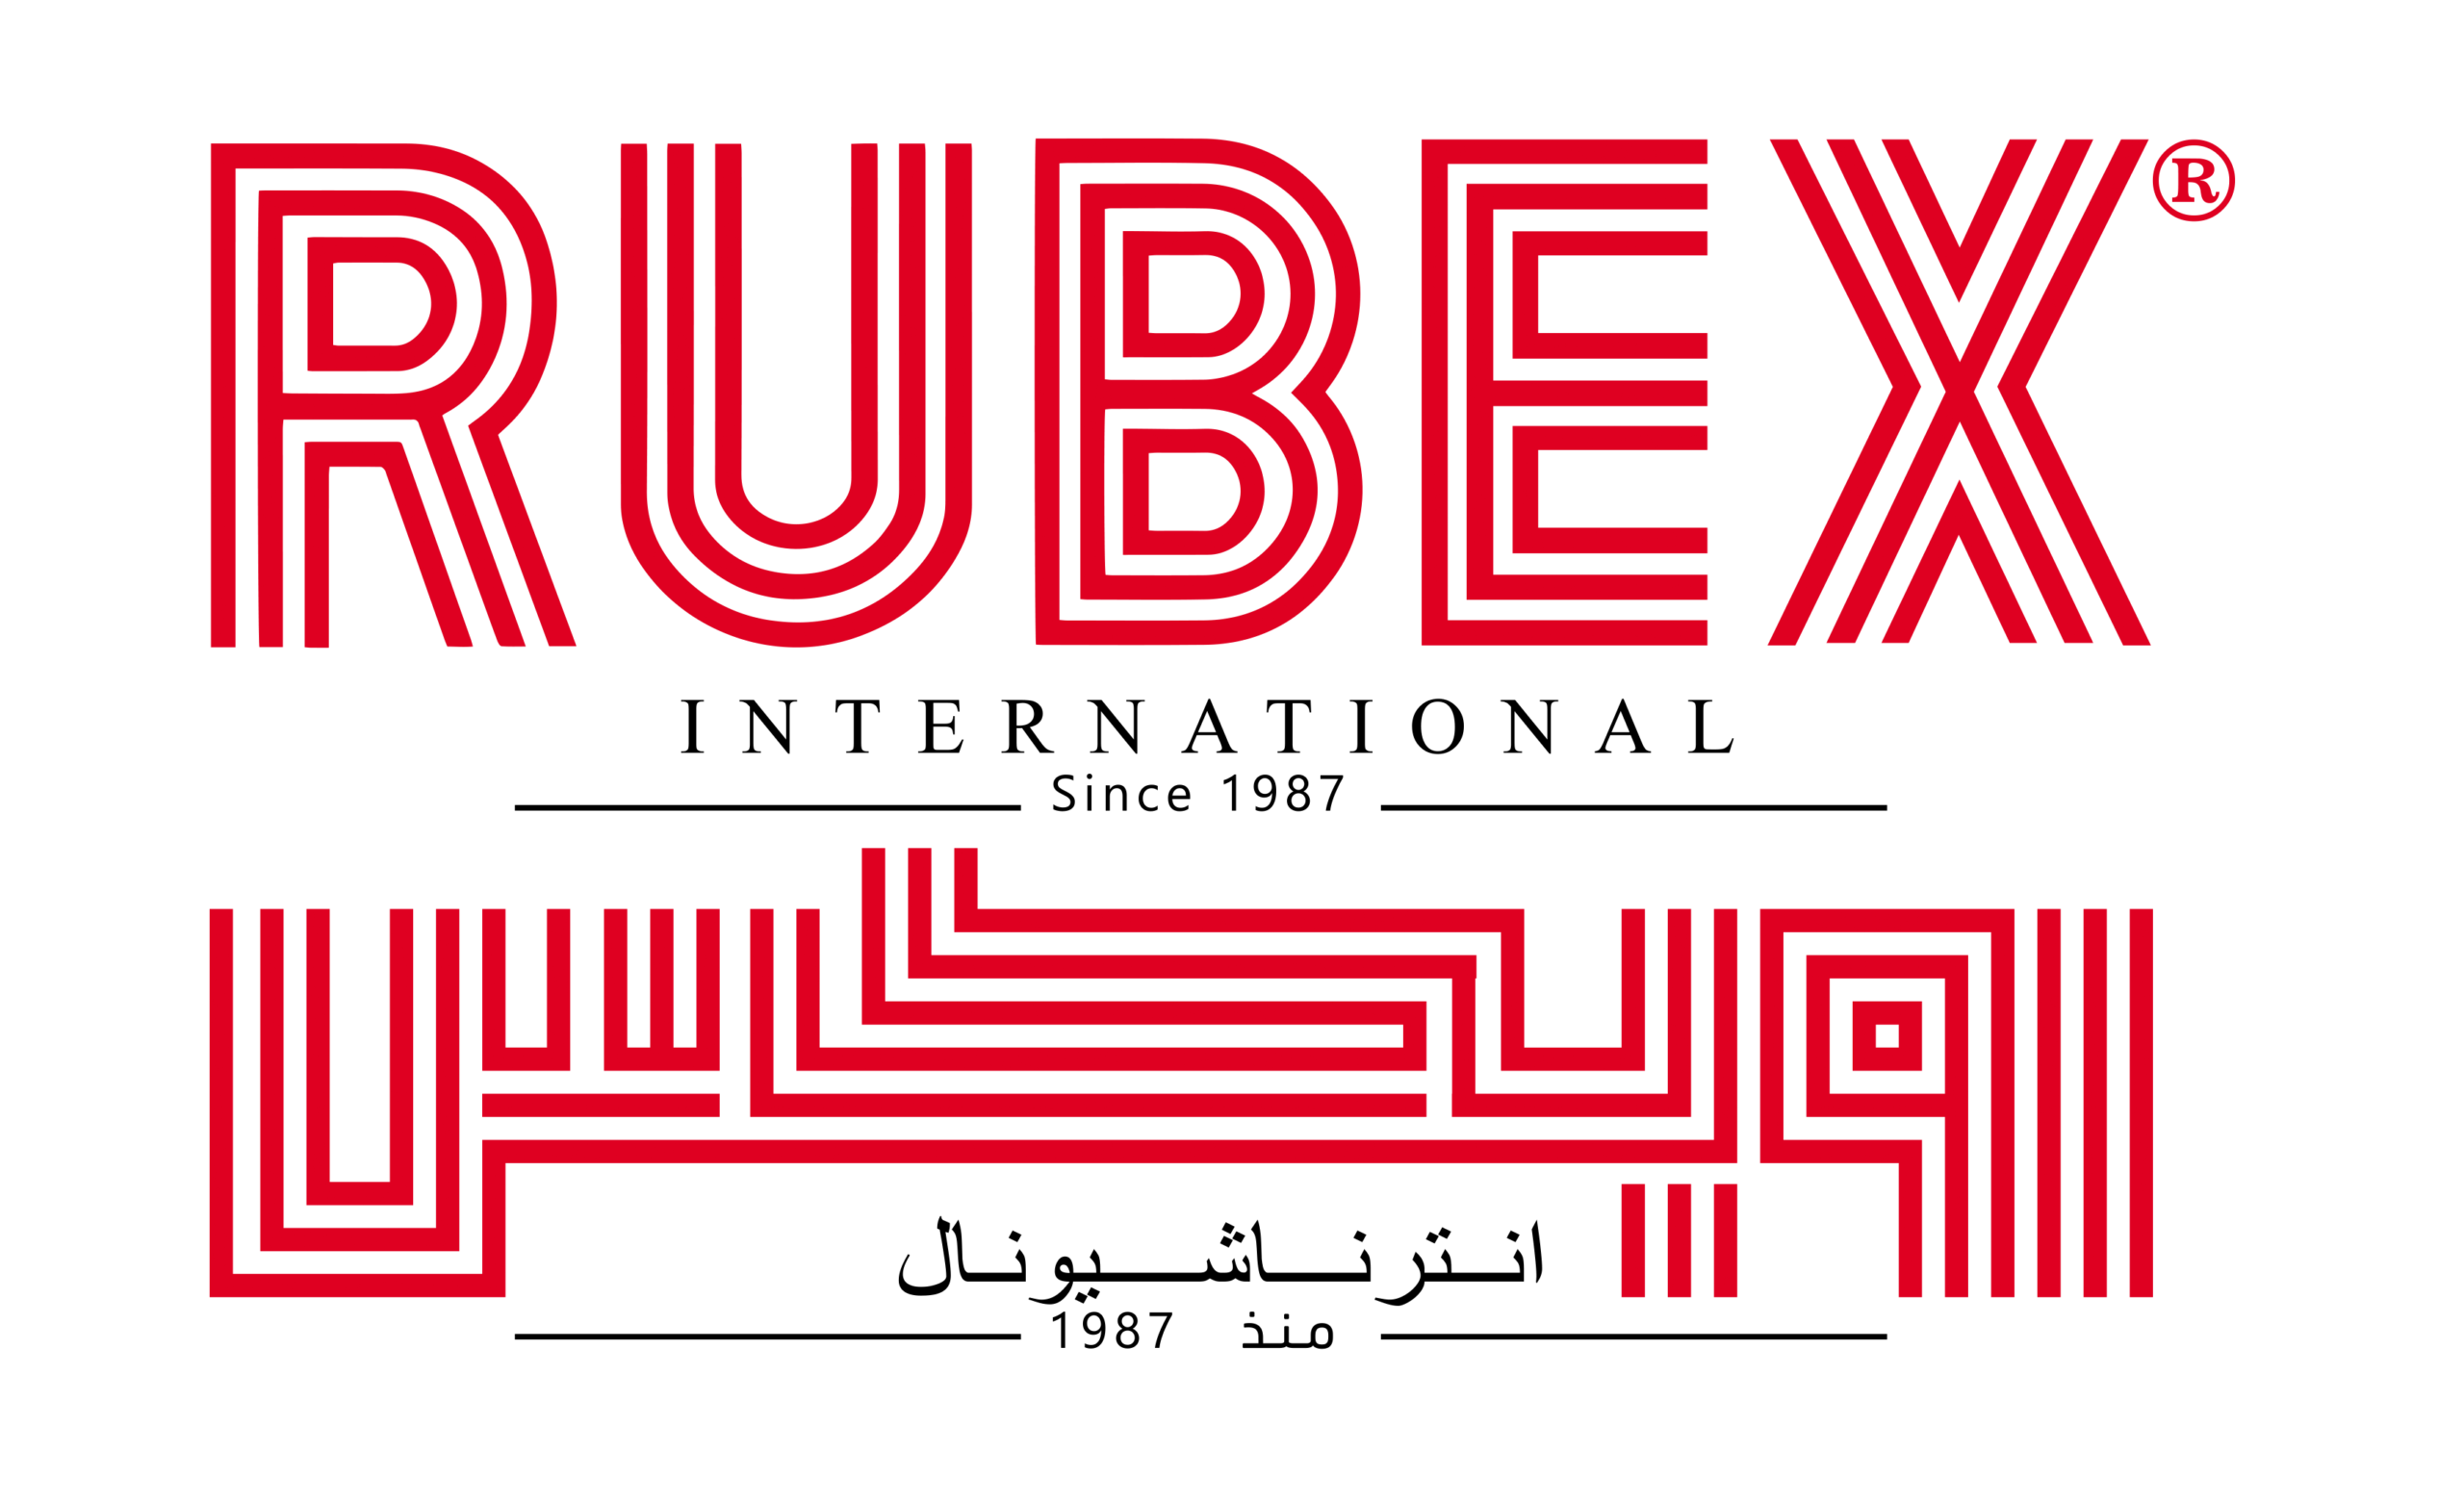 Rubex International - logo